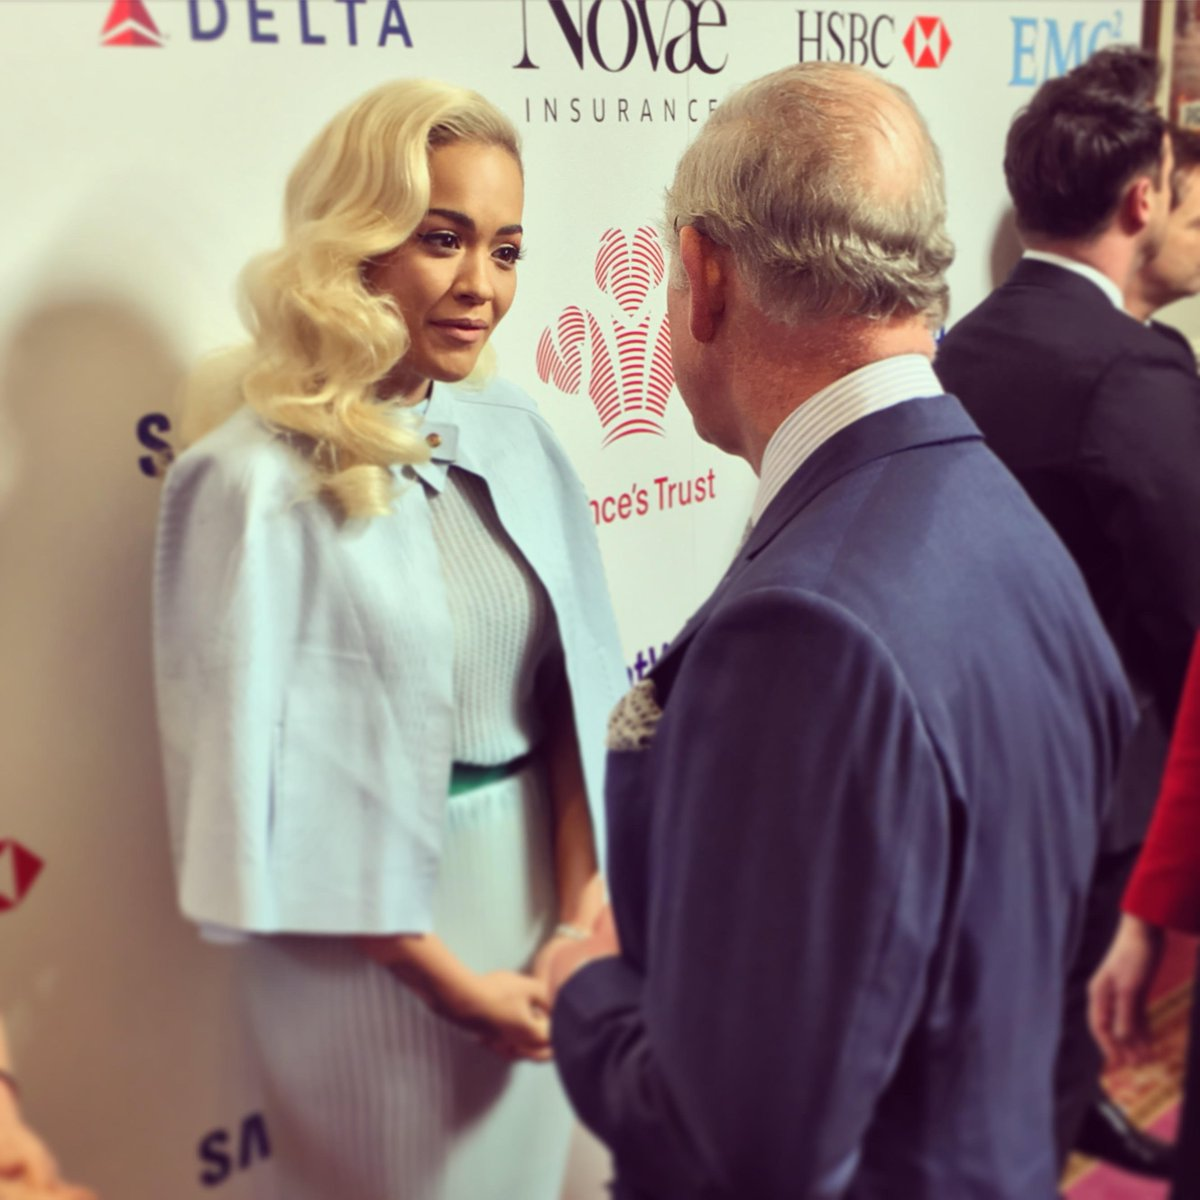 RT @ClarenceHouse: .@RitaOra wished HRH a safe trip to Kosovo when they met @princestrust's #CelebrateSuccess Awards today. https://t.co/5B…